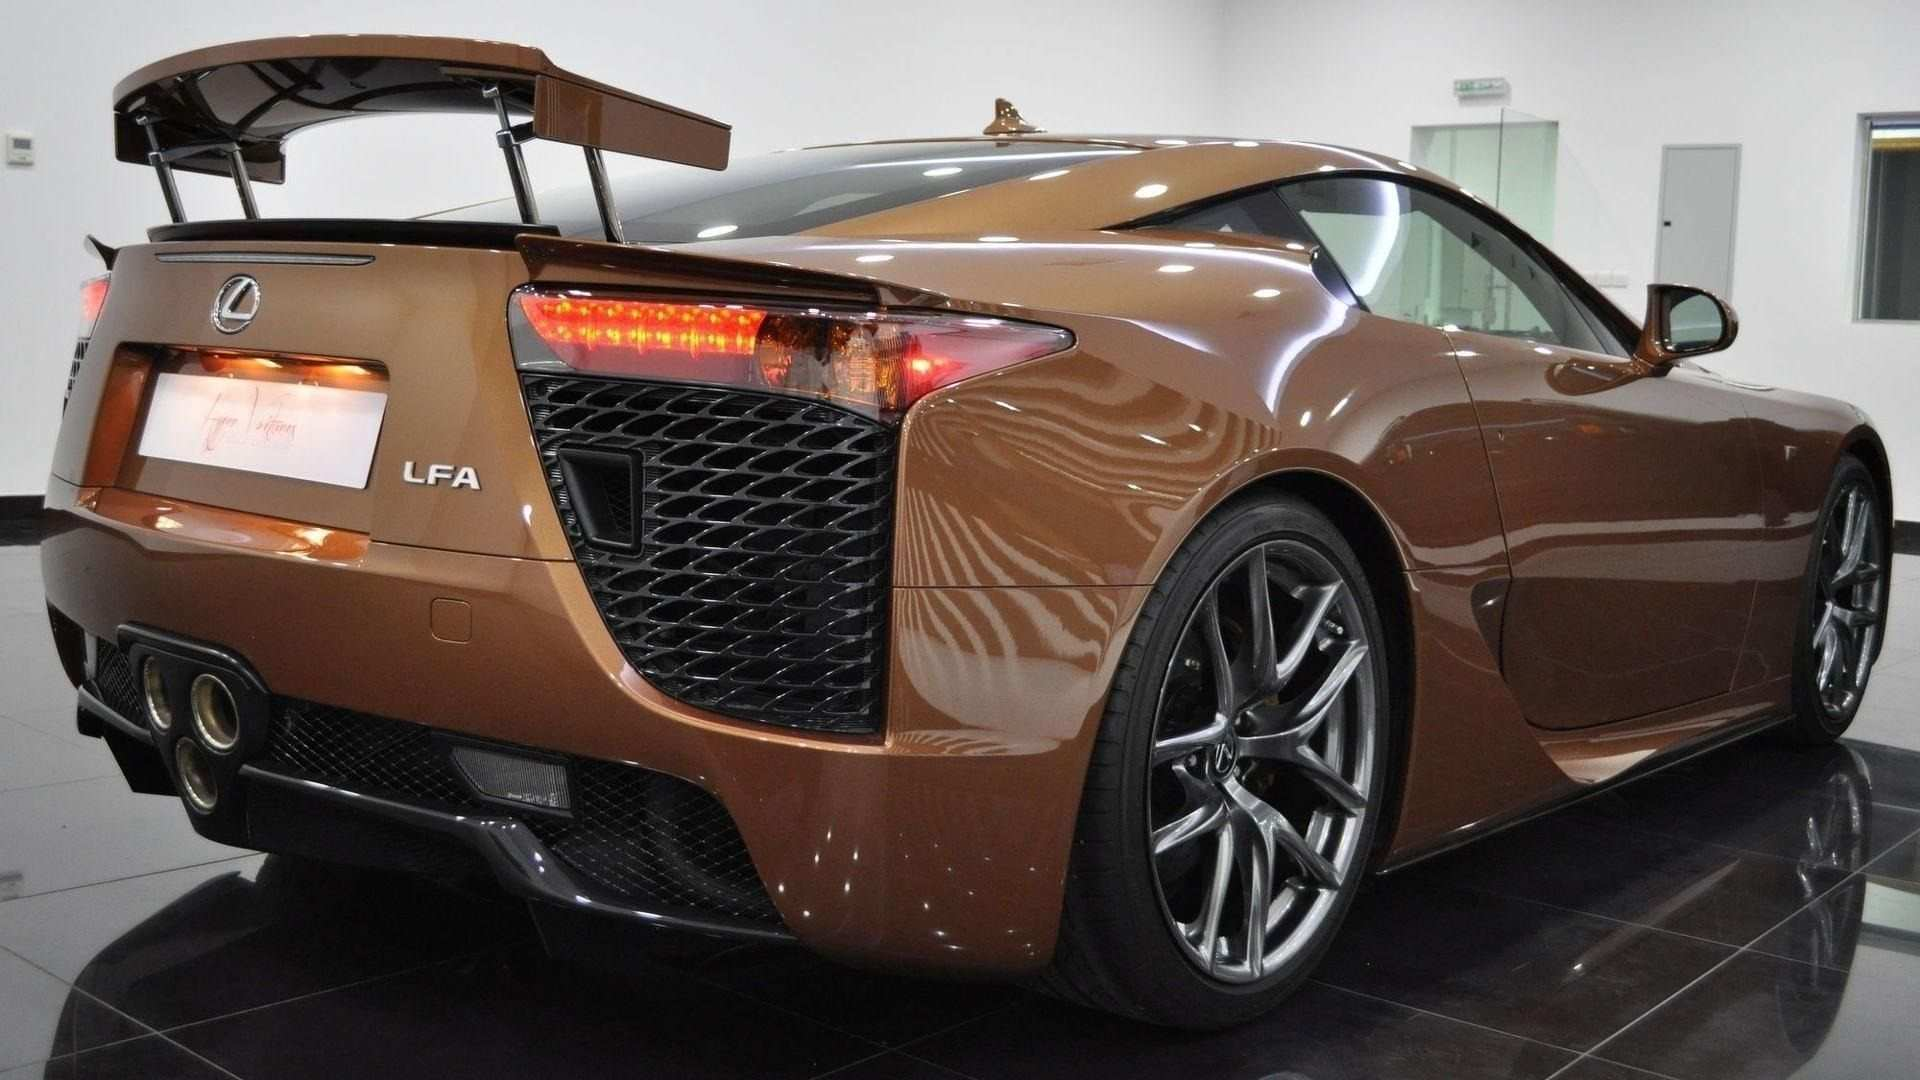 99 Best Review Lexus Lfa 2019 Overview for Lexus Lfa 2019